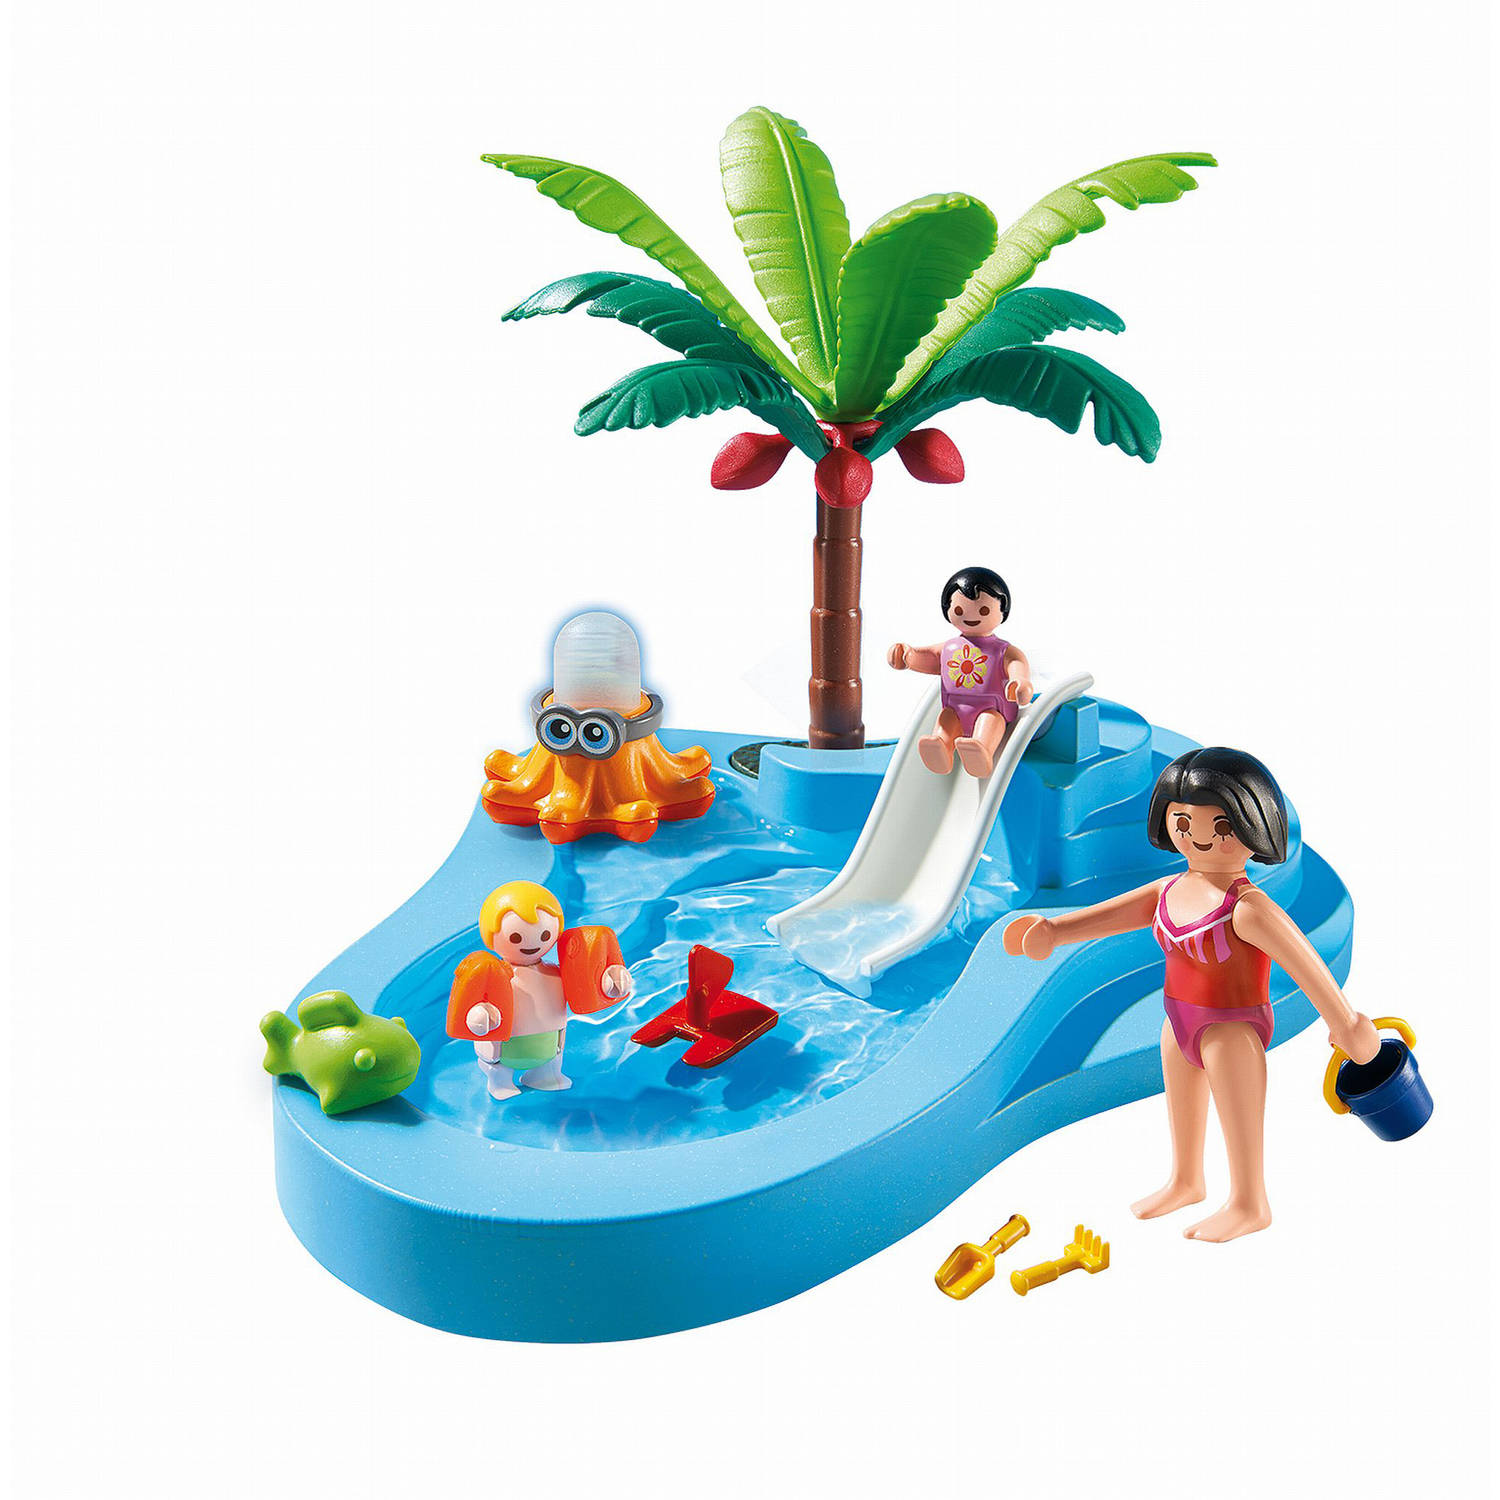 Superior PLAYMOBIL Baby Pool With Slide Playset